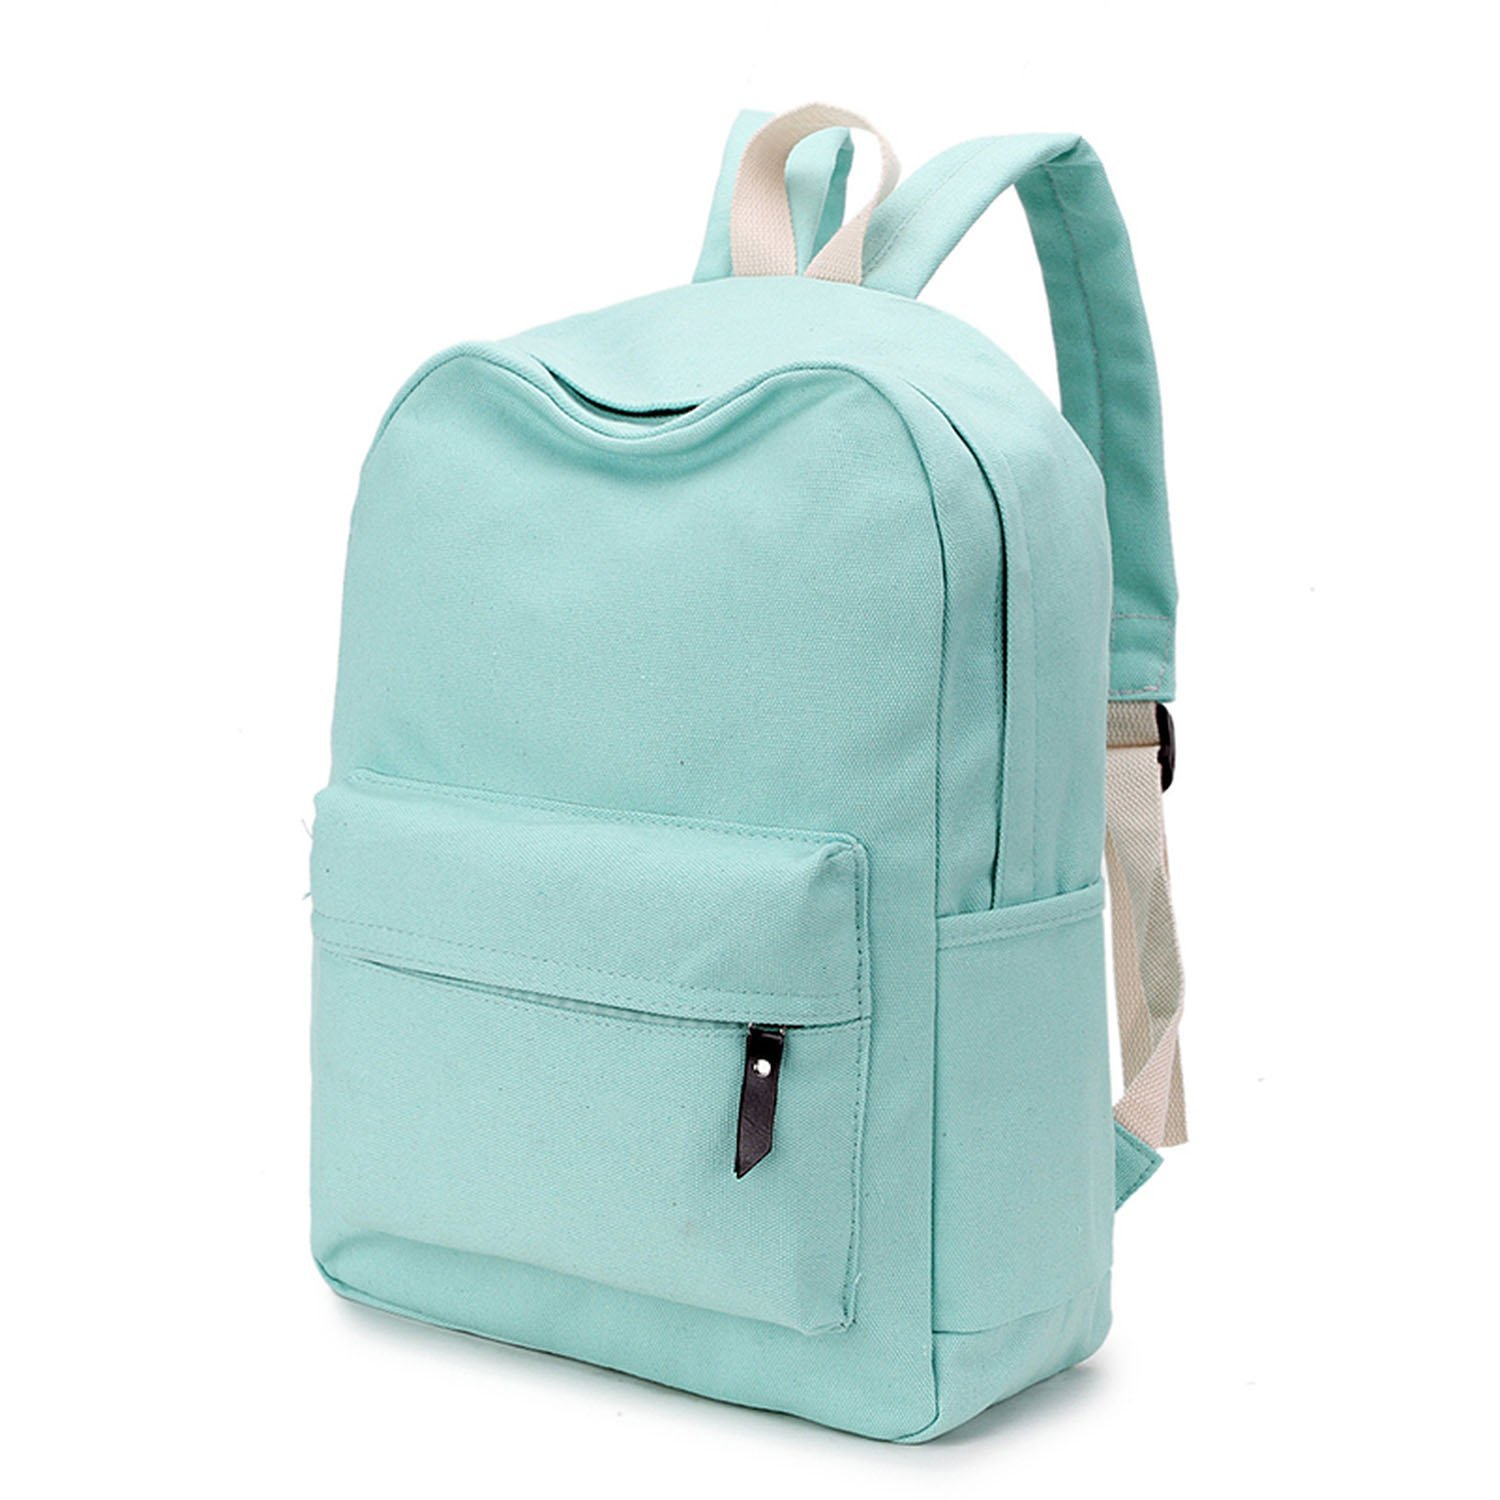 Amazon.com: Canvas Plain Japan Style Minimalism Best Backpack For Adolescent Girl Female Travel Leisure Women Backpack Shoulder Bag,Army Green,38x12x28cm: ...